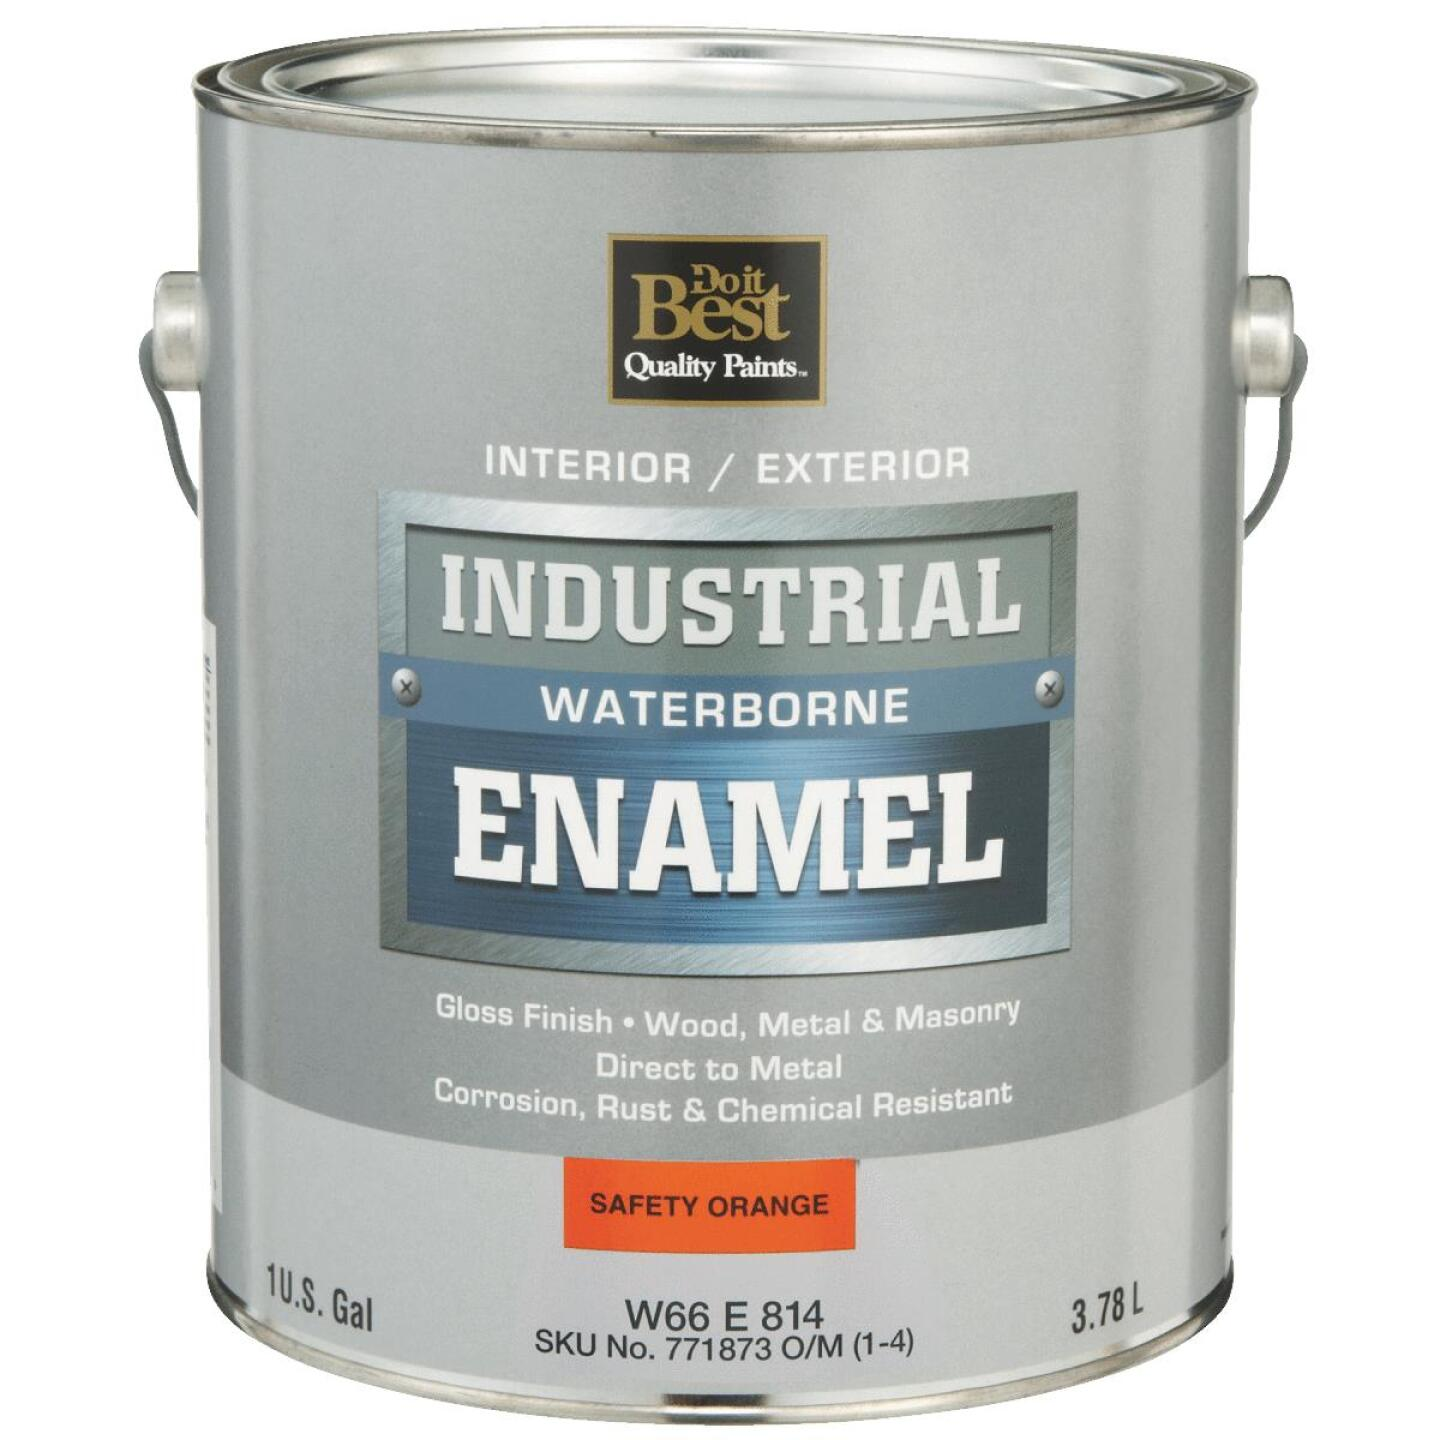 Do it Best Waterborne Industrial Enamel, Safety Orange, 1 Gal. Image 1